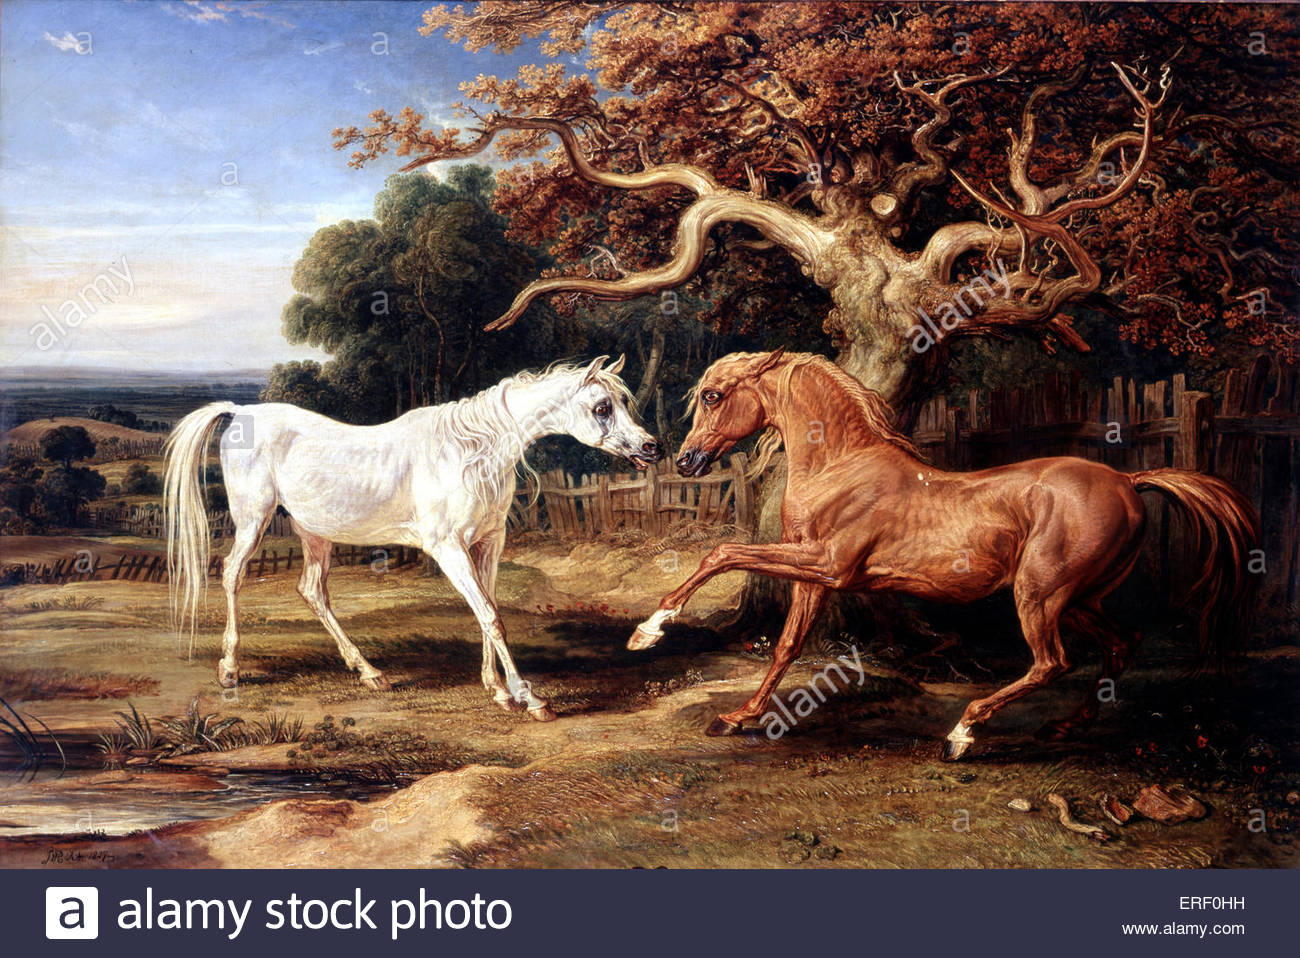 L'Amour de Cheval by James Ward, 1827. Oil painting, 1448 x 2126 mm. JW: English painter, 23 October 1769 – - Stock Image